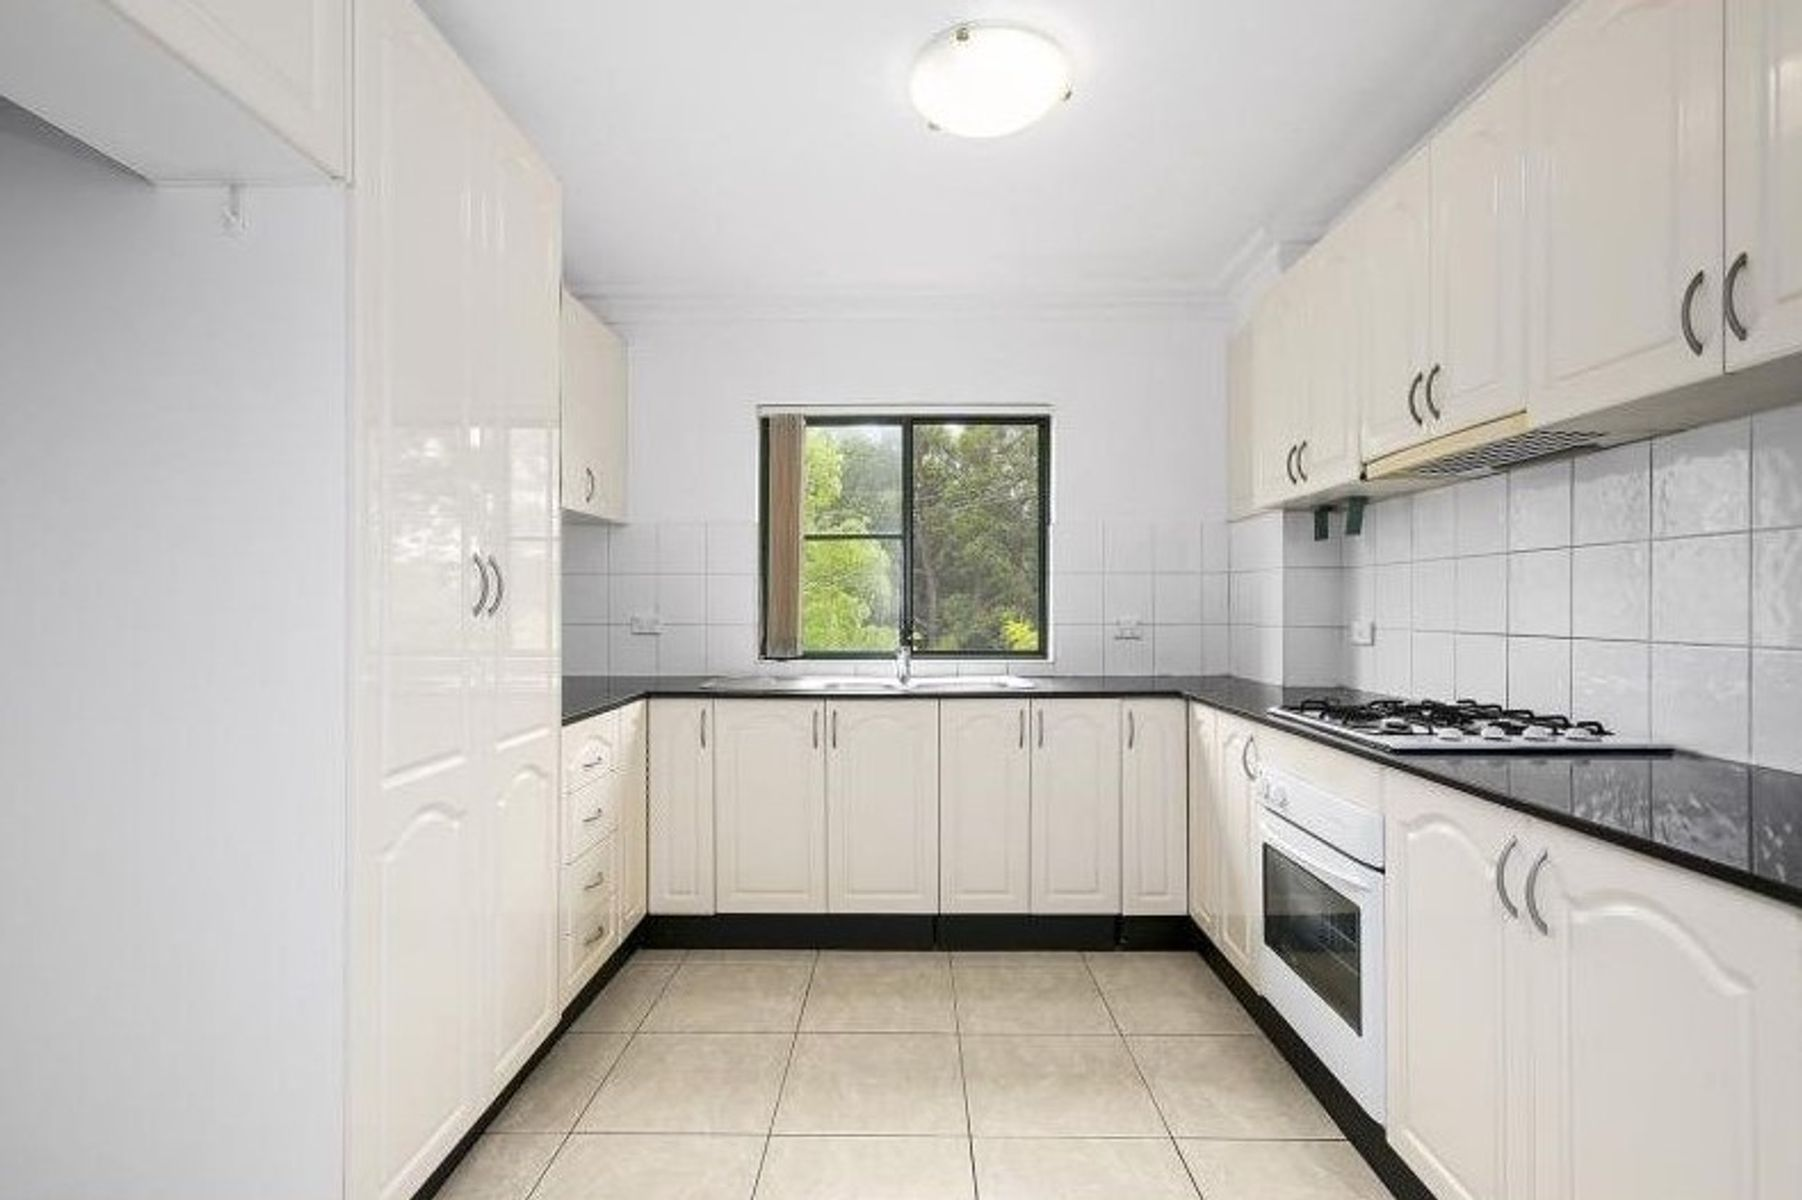 16/11 Cahors Road, Padstow, NSW 2211